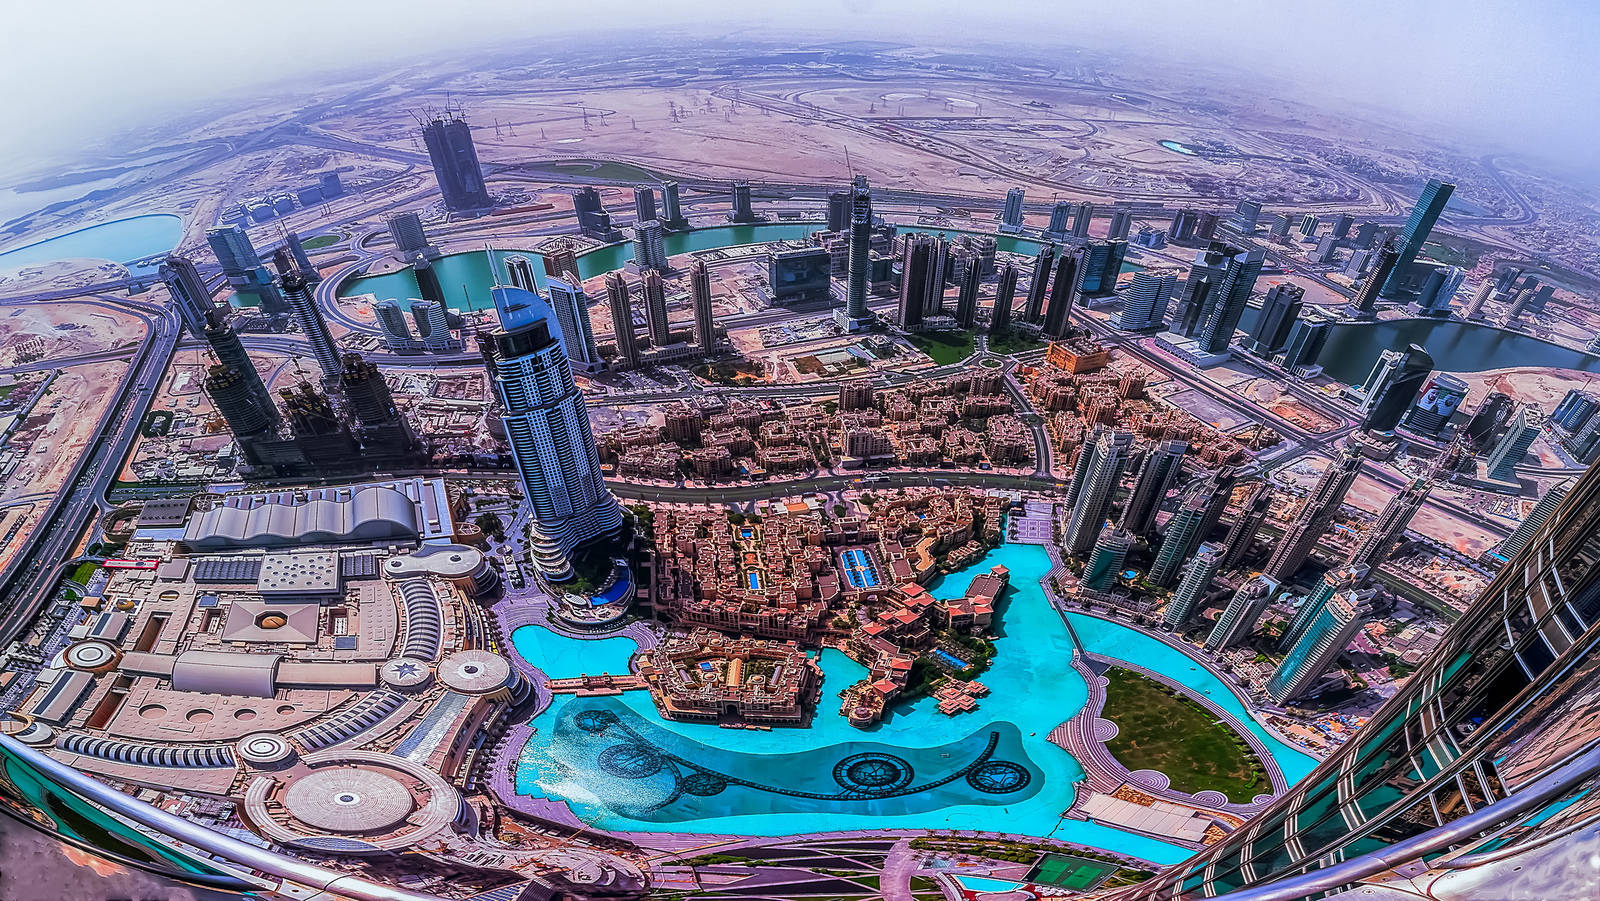 A new paradise for investors the middle east, from petrodollars to startups